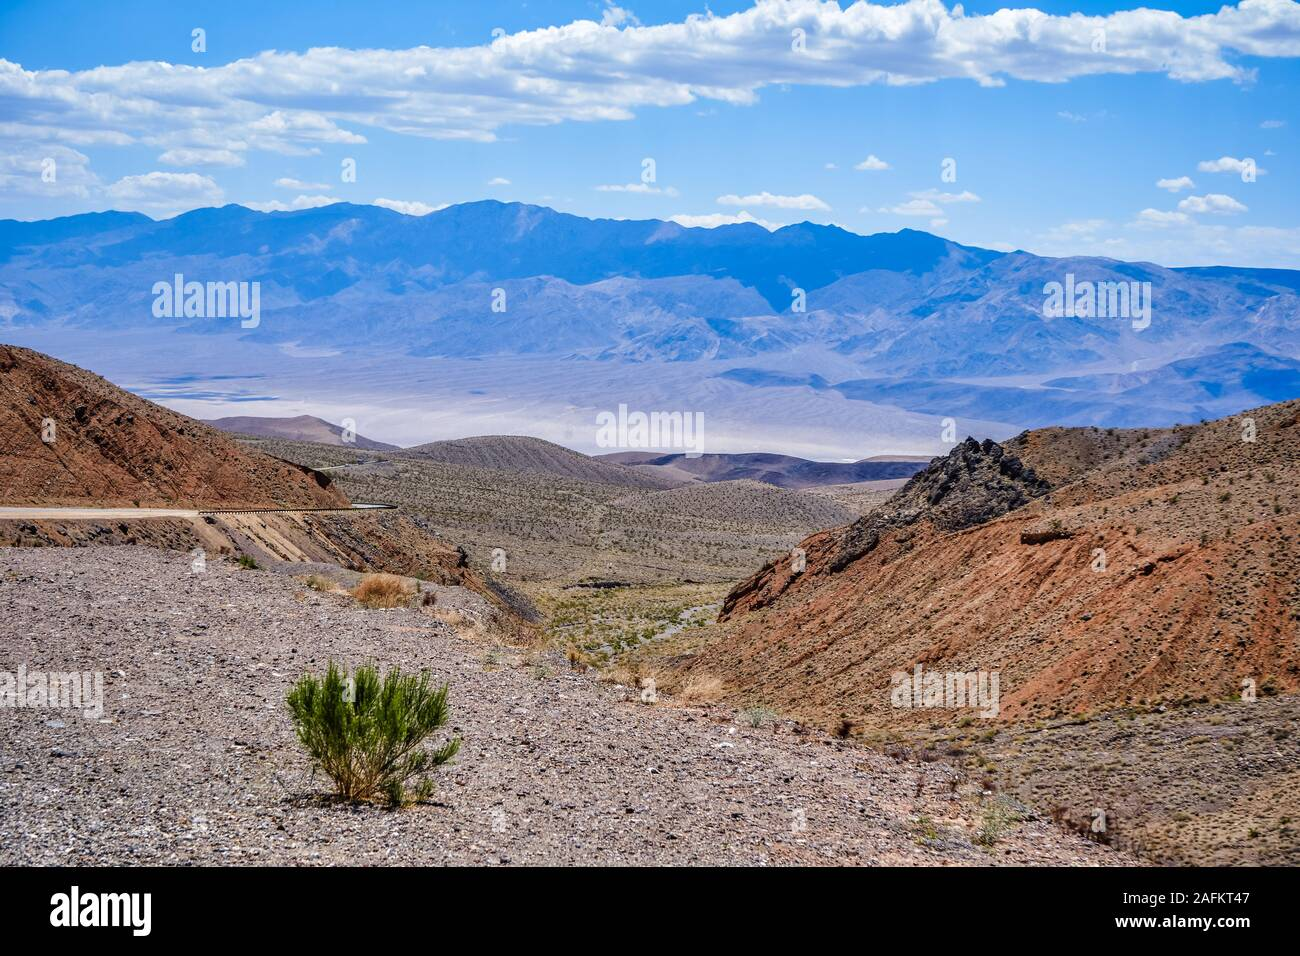 The trail at Towne Pass on the west side of Death Valley National Park, United States Stock Photo